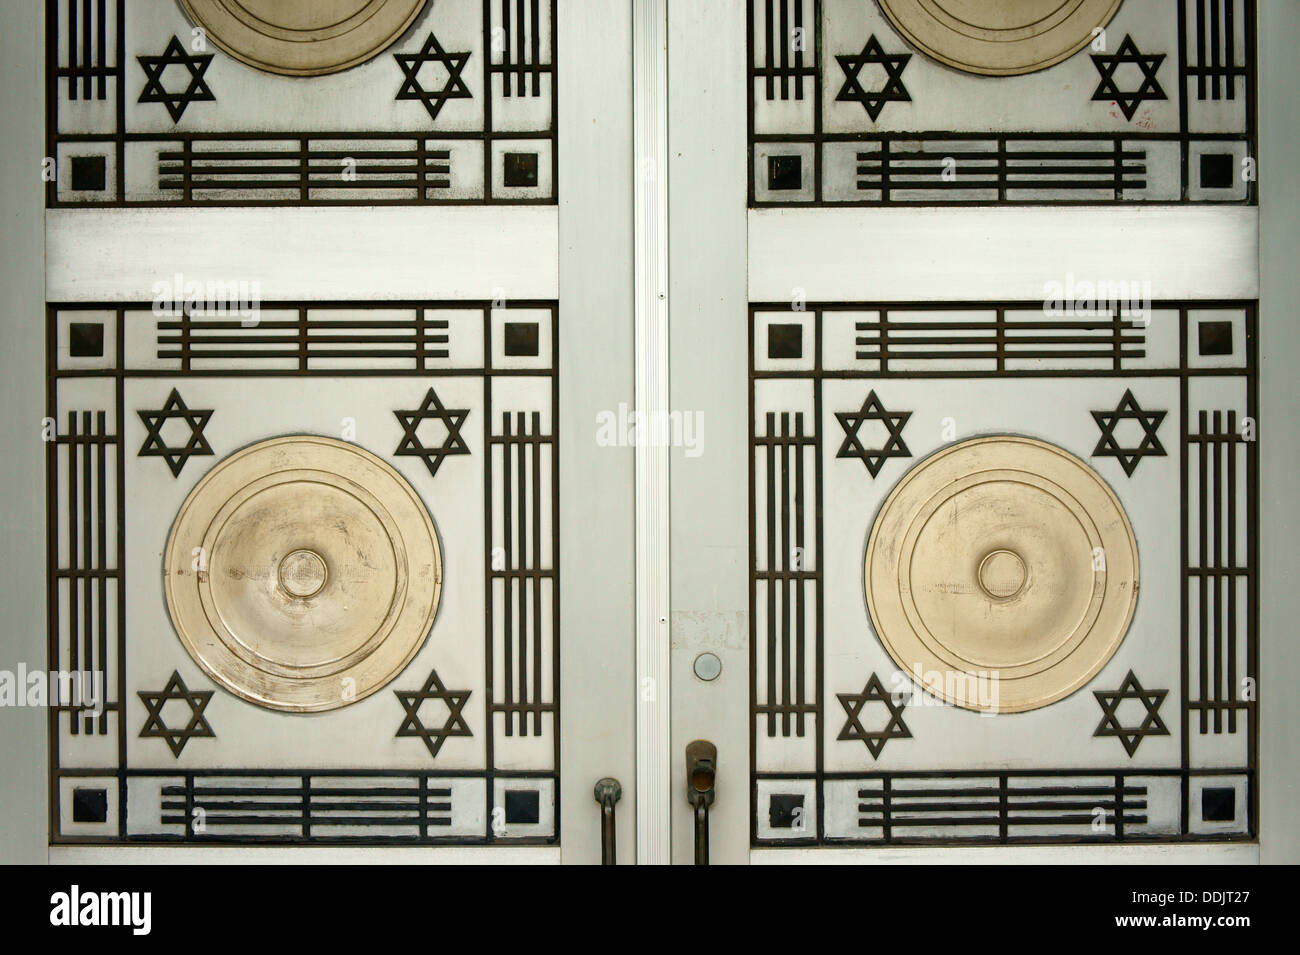 Symbols Jewish Religion Stock Photos Symbols Jewish Religion Stock